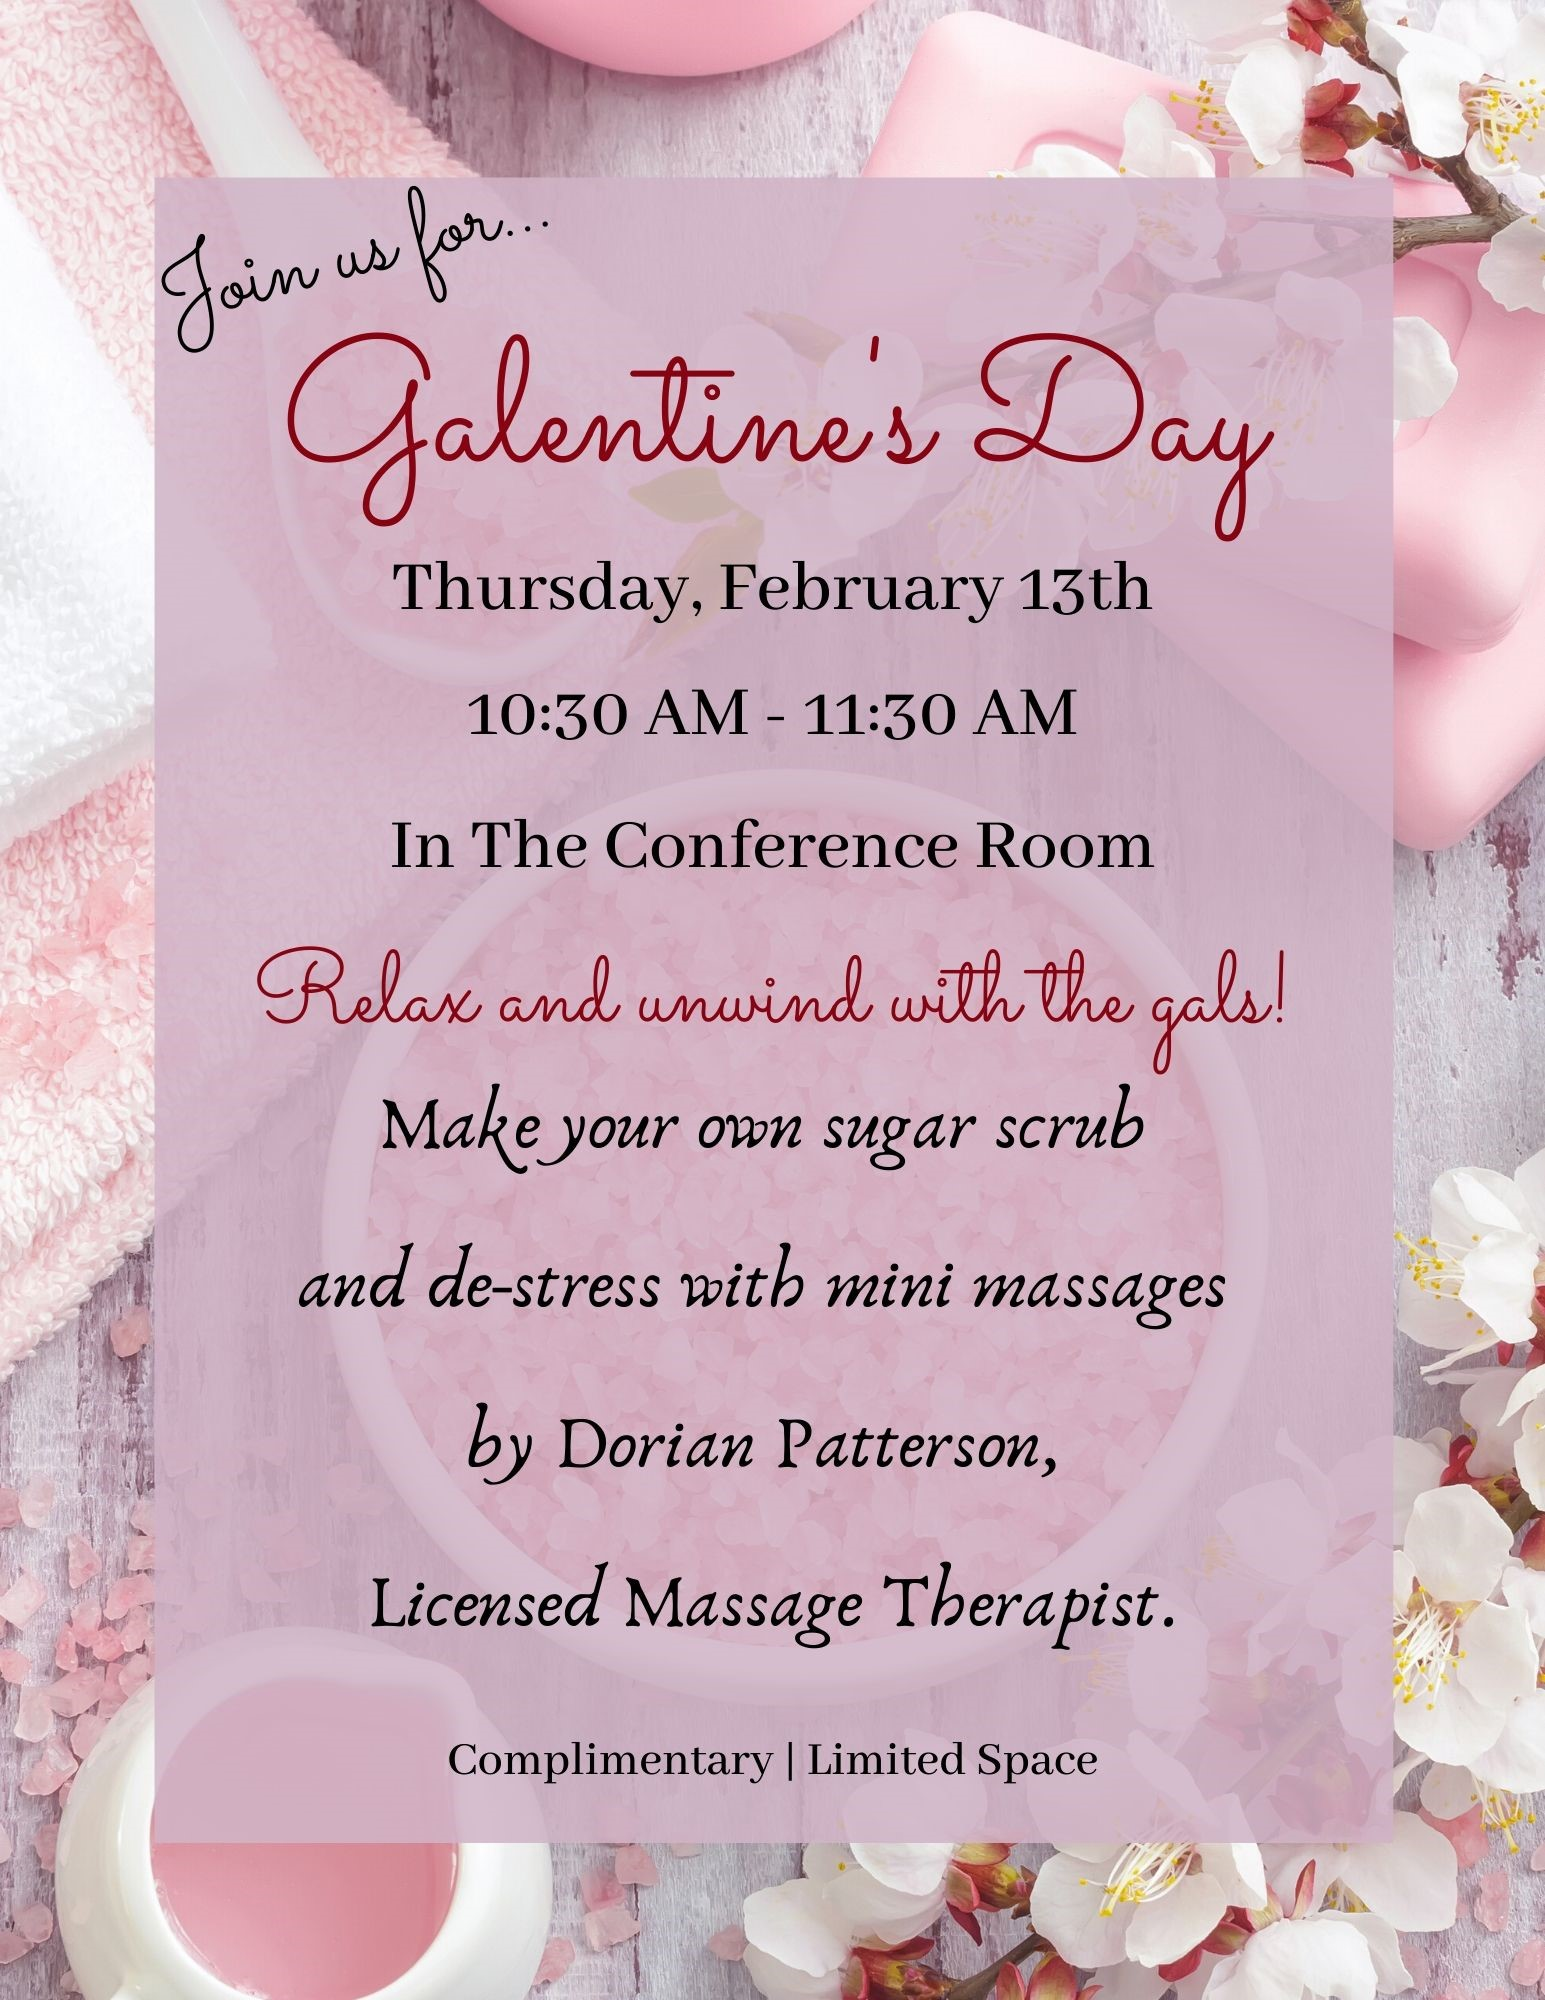 Galentine's Day @ The Reserve Club Conference Room